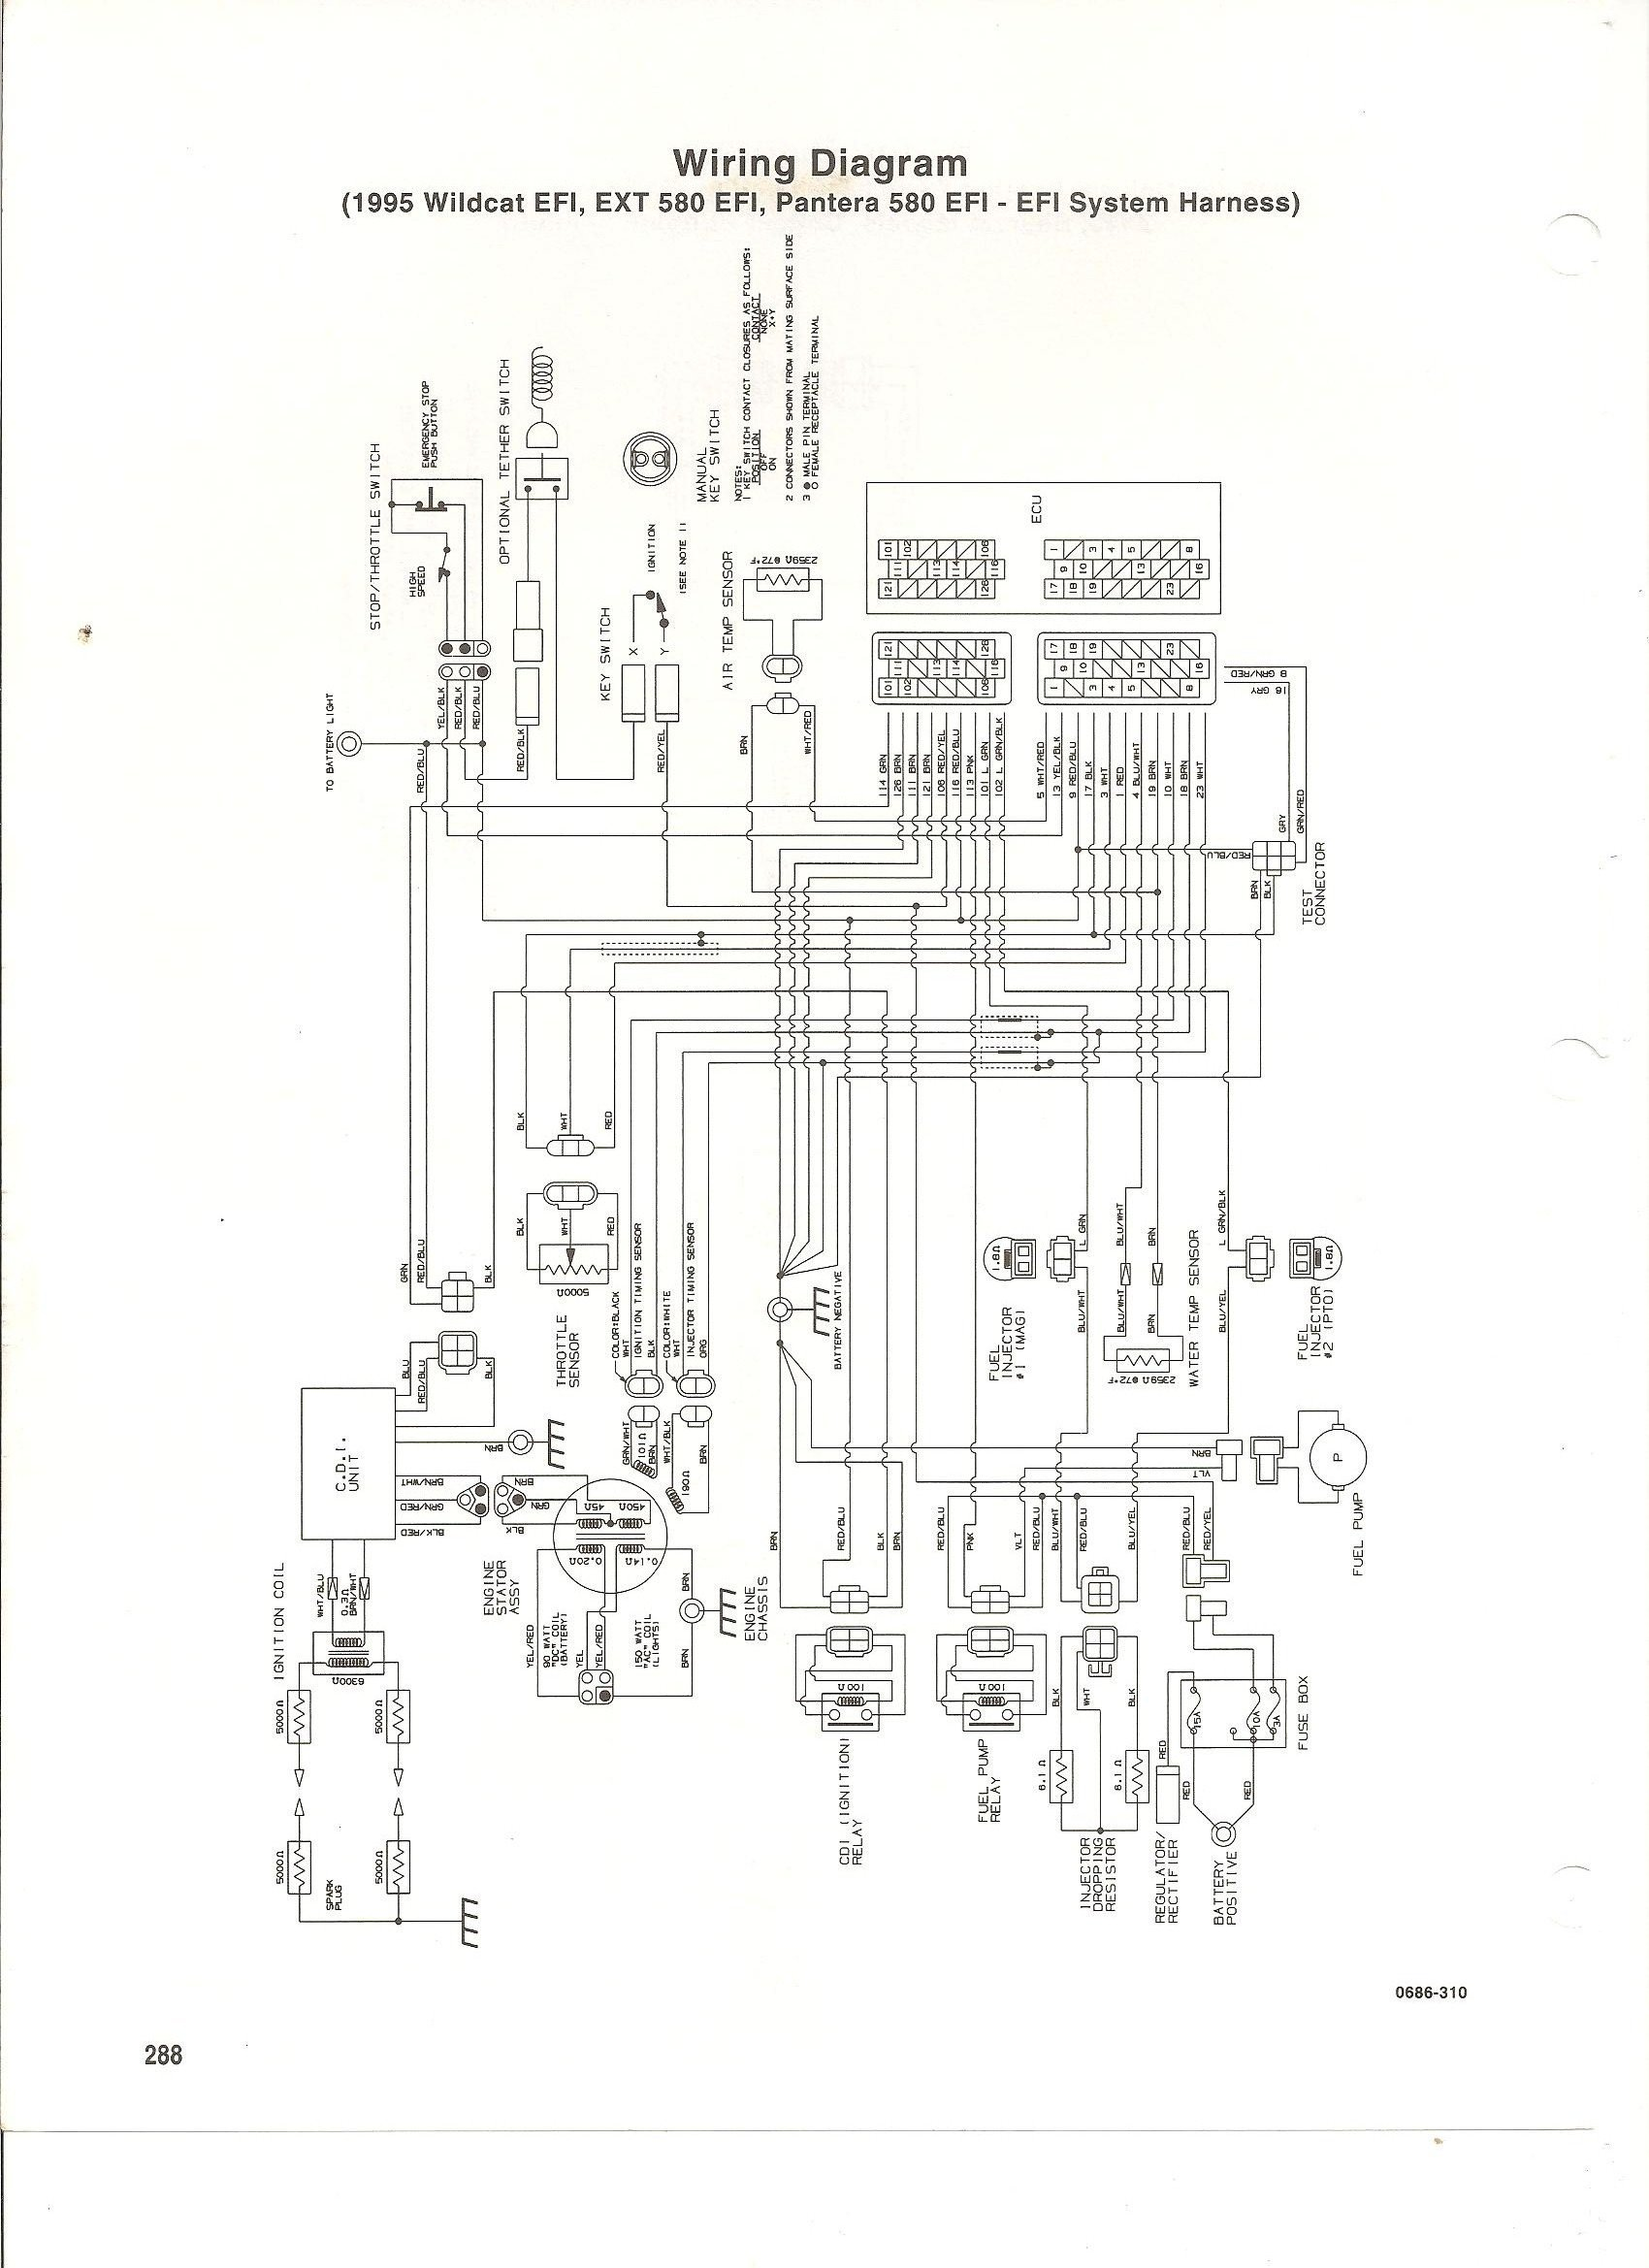 Rectifier Wiring Diagram For Zx6